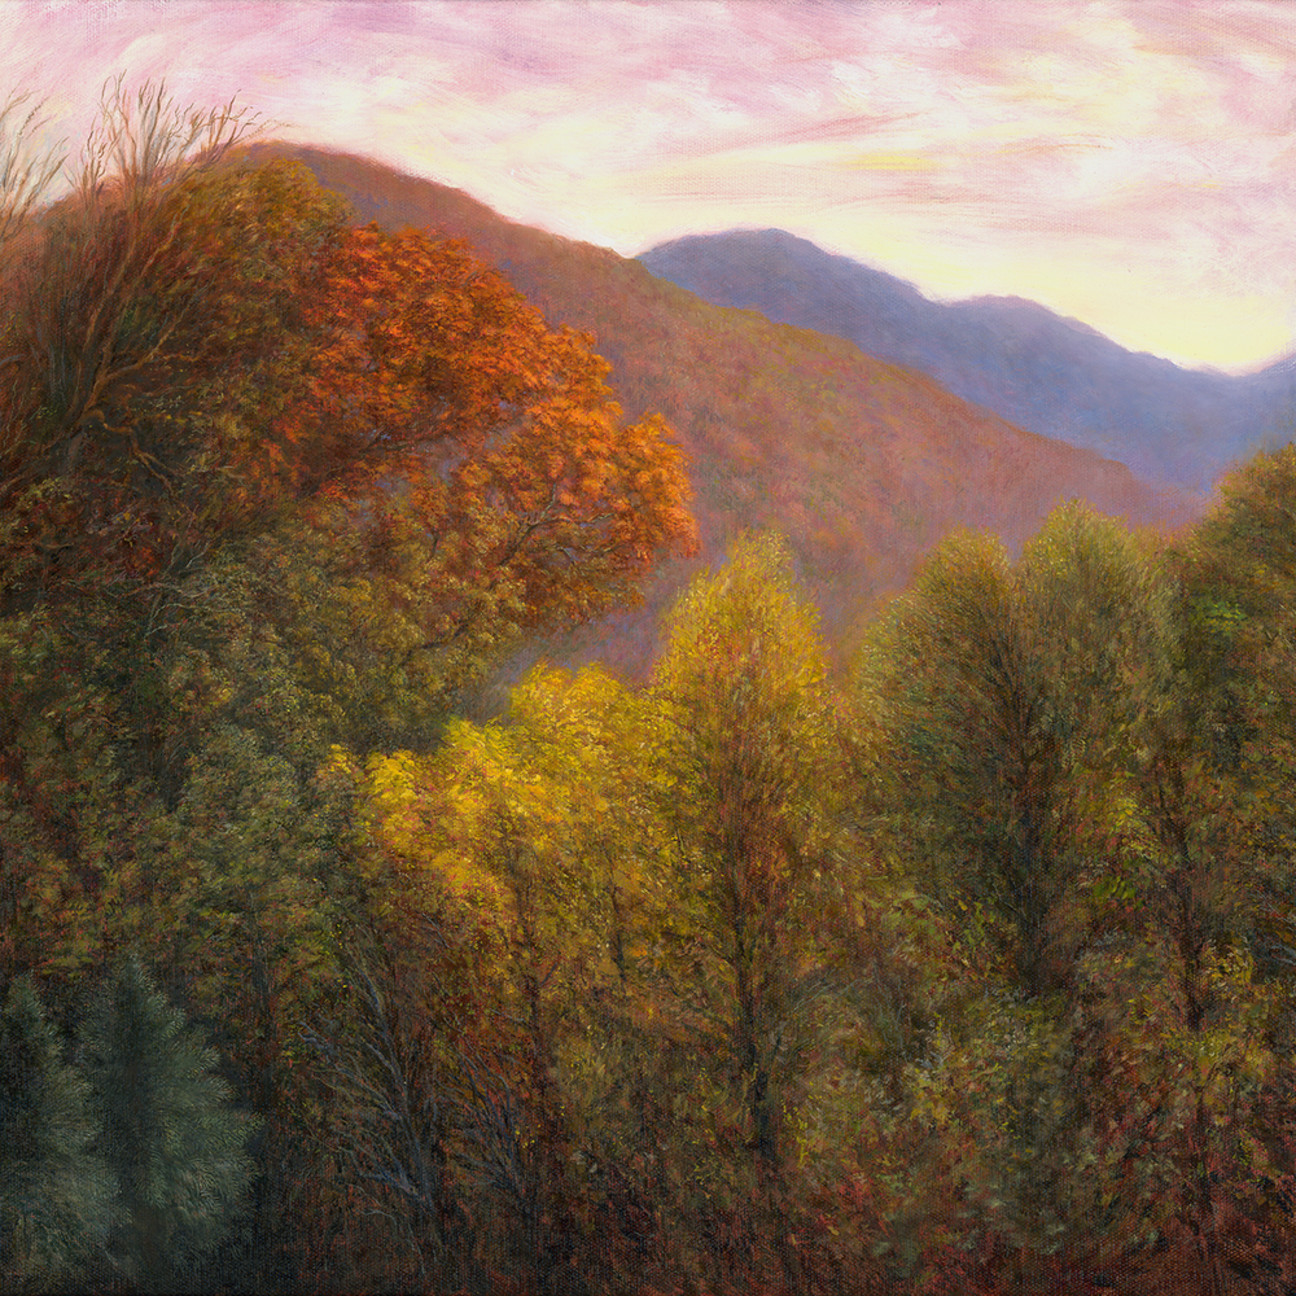 18x24 22300dpi swannanoa autumn scene   rafferty   painting ob1iv5